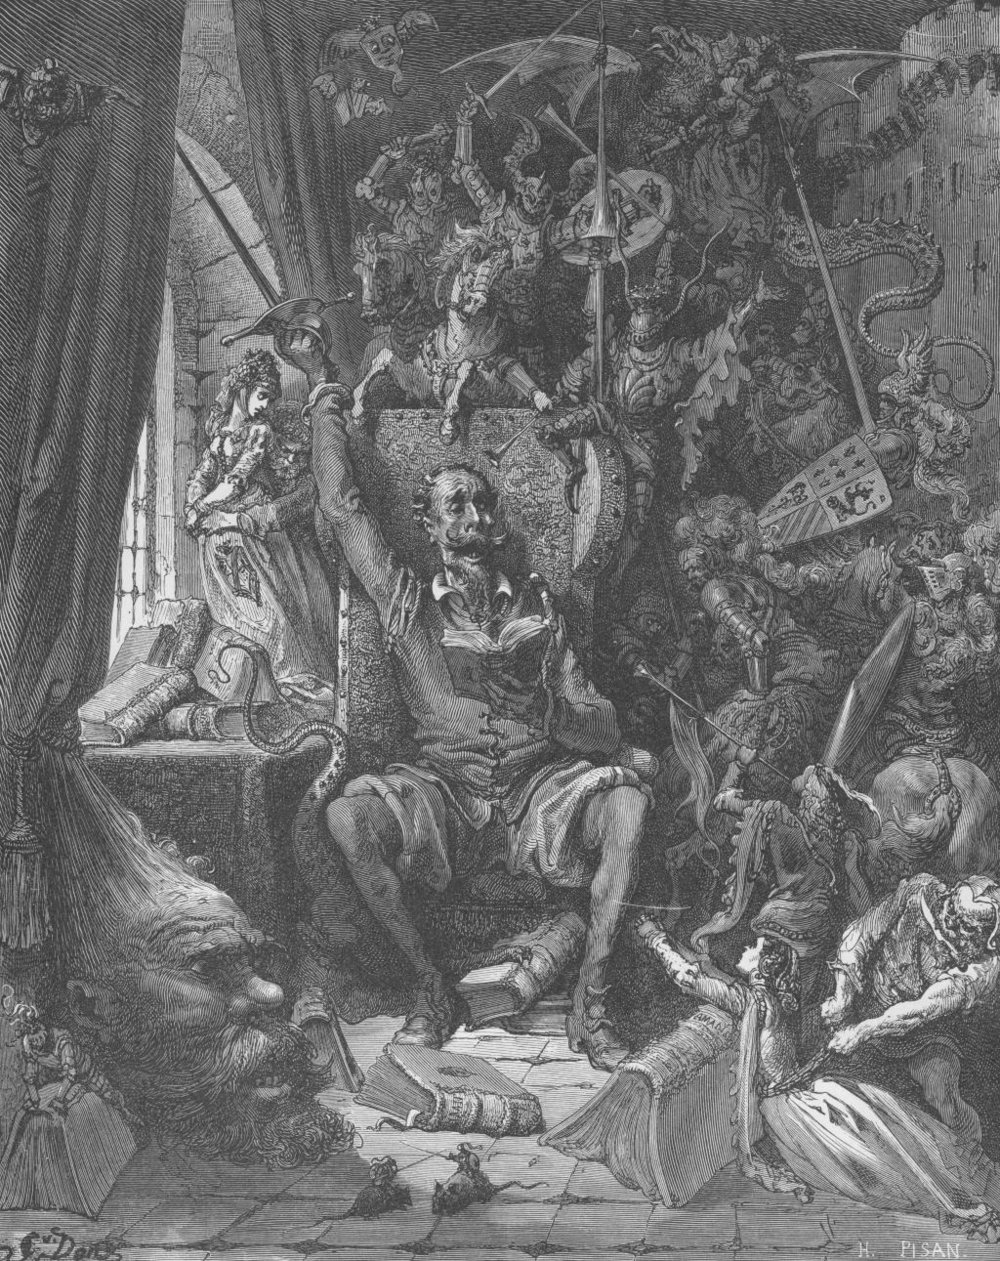 "Image: One of Gustave Doré's Illustrations from Cervantes's classic Don Quixote ""A world of disorderly notions, picked out of his books, crowded into his imagination"""